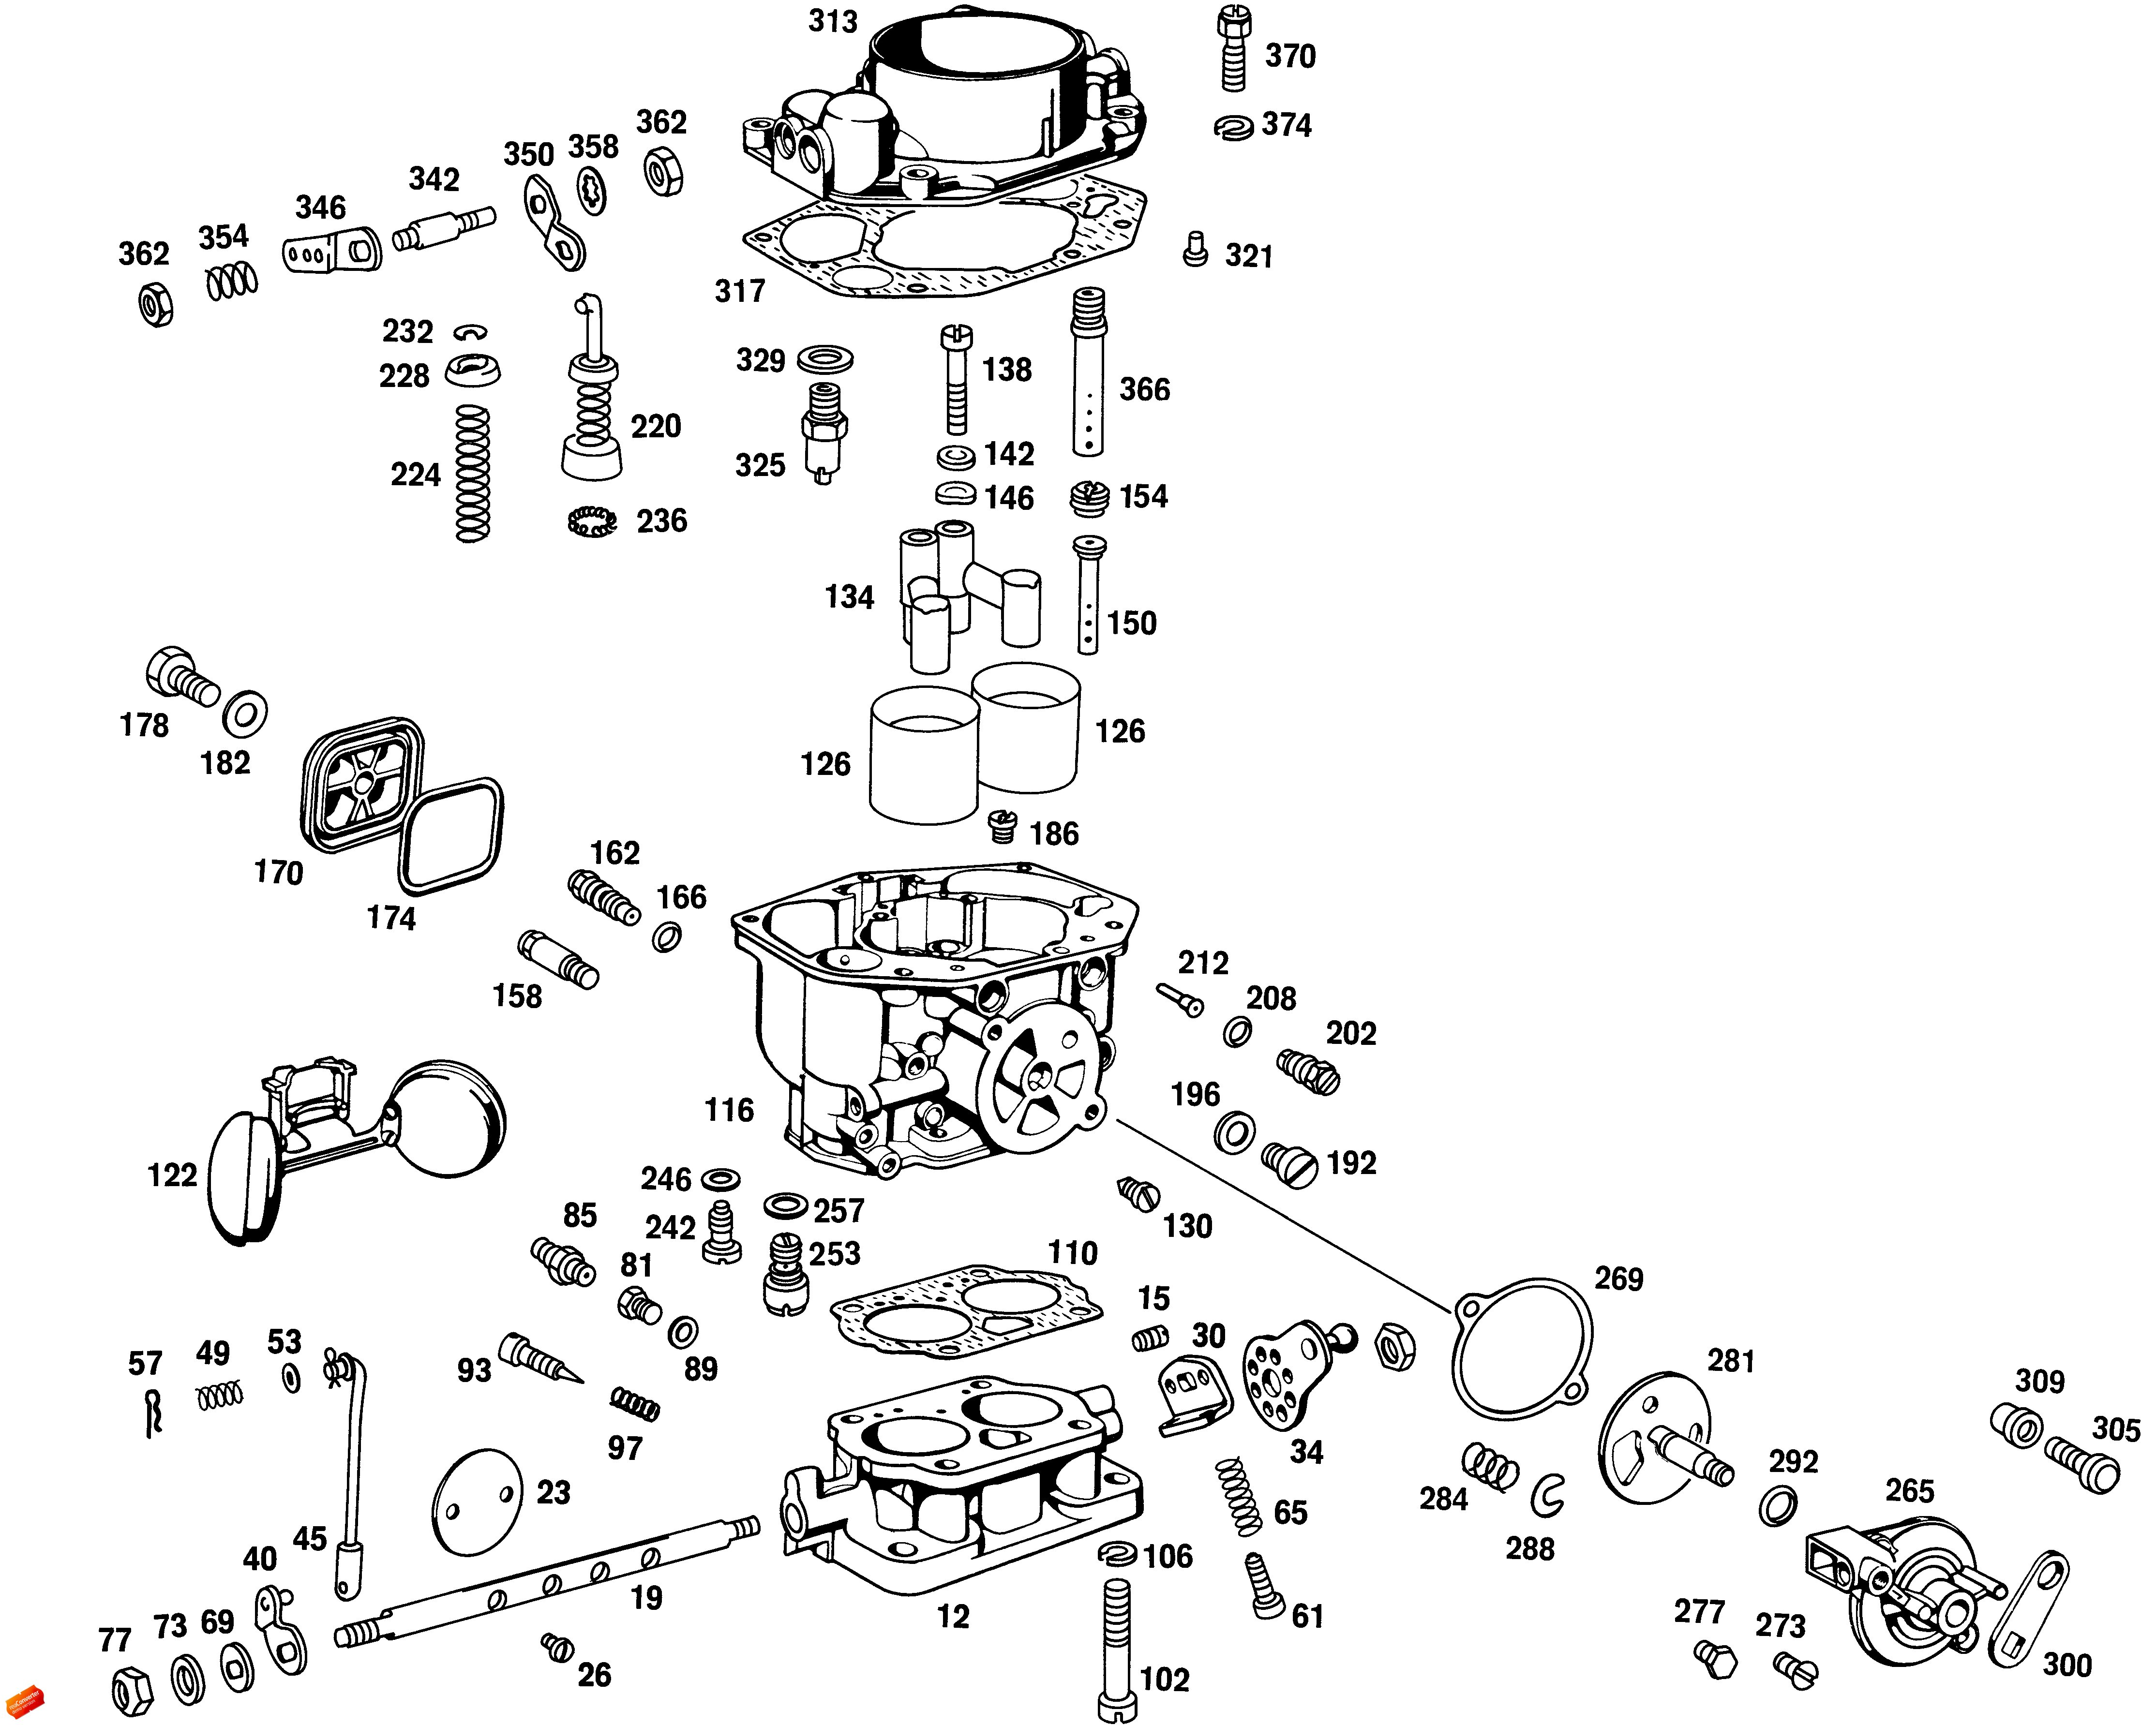 82 Chevy K10 Vacuum Diagram Not Lossing Wiring Monte Carlo 87 Frame And Fuse Box Brown